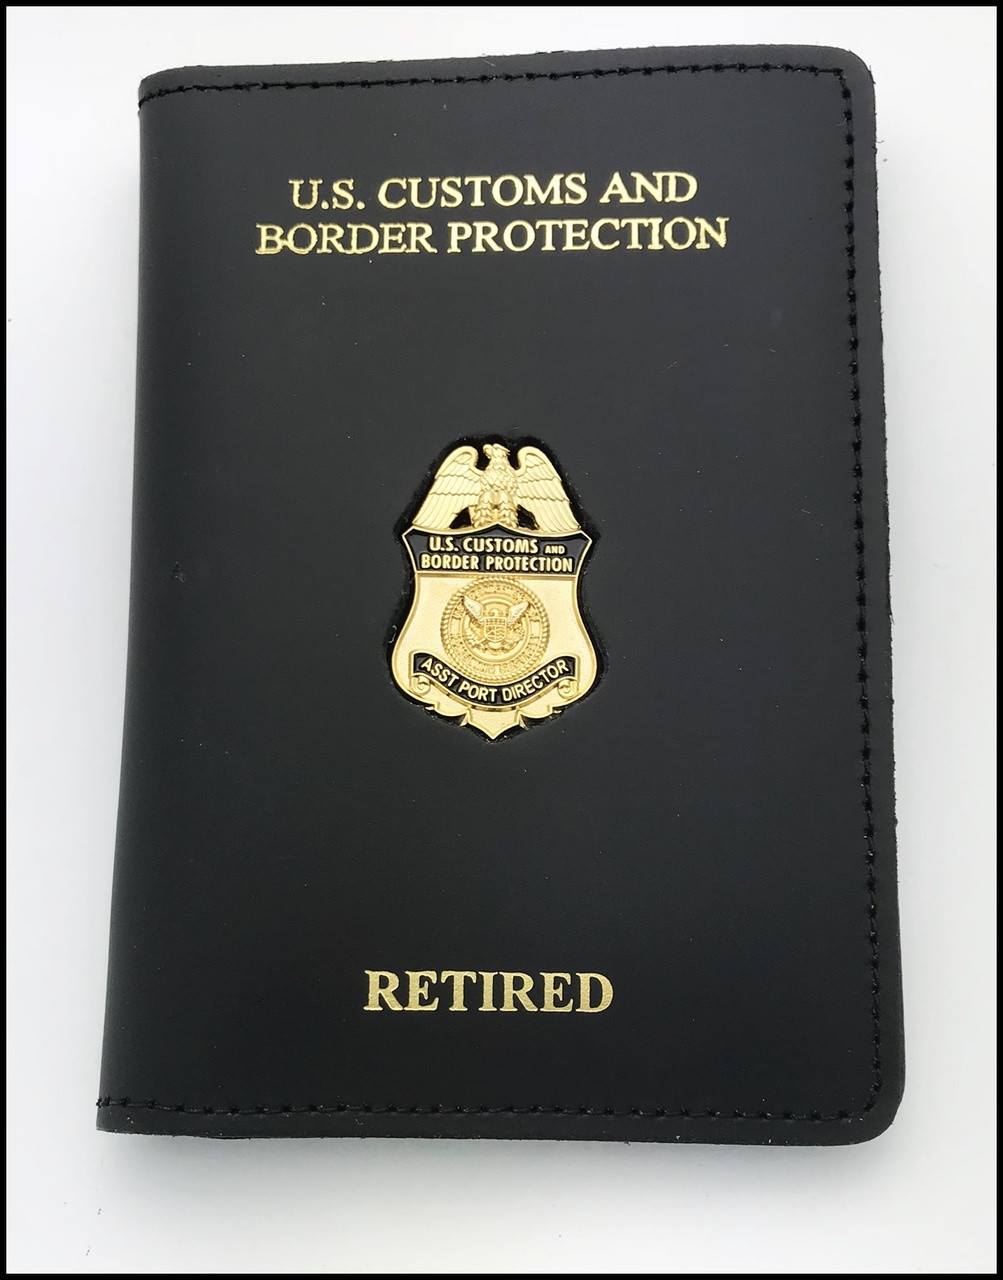 Customs and Border Protection Asst. Port Director Mini Badge Credential Case - DHS & Retired embossing